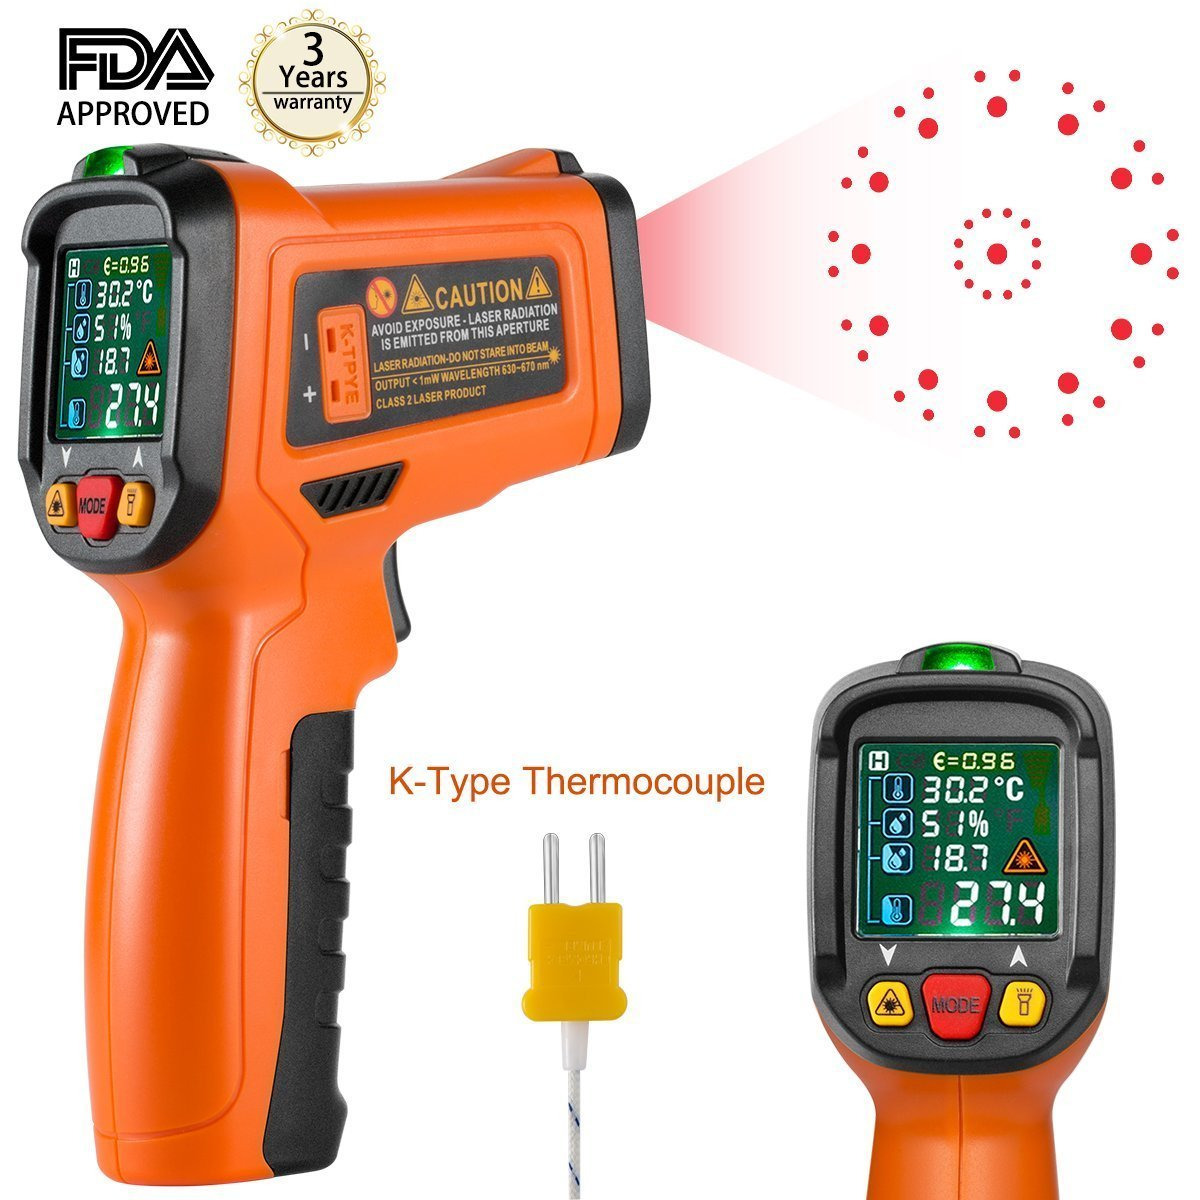 Laser thermometer, Infrared thermometer Digital Laser Thermometer Non Contact Kitchen Thermometer Temperature Gun Color Display -58°F~1472°FWith 12 Points Aperture Temperature Alarm Function